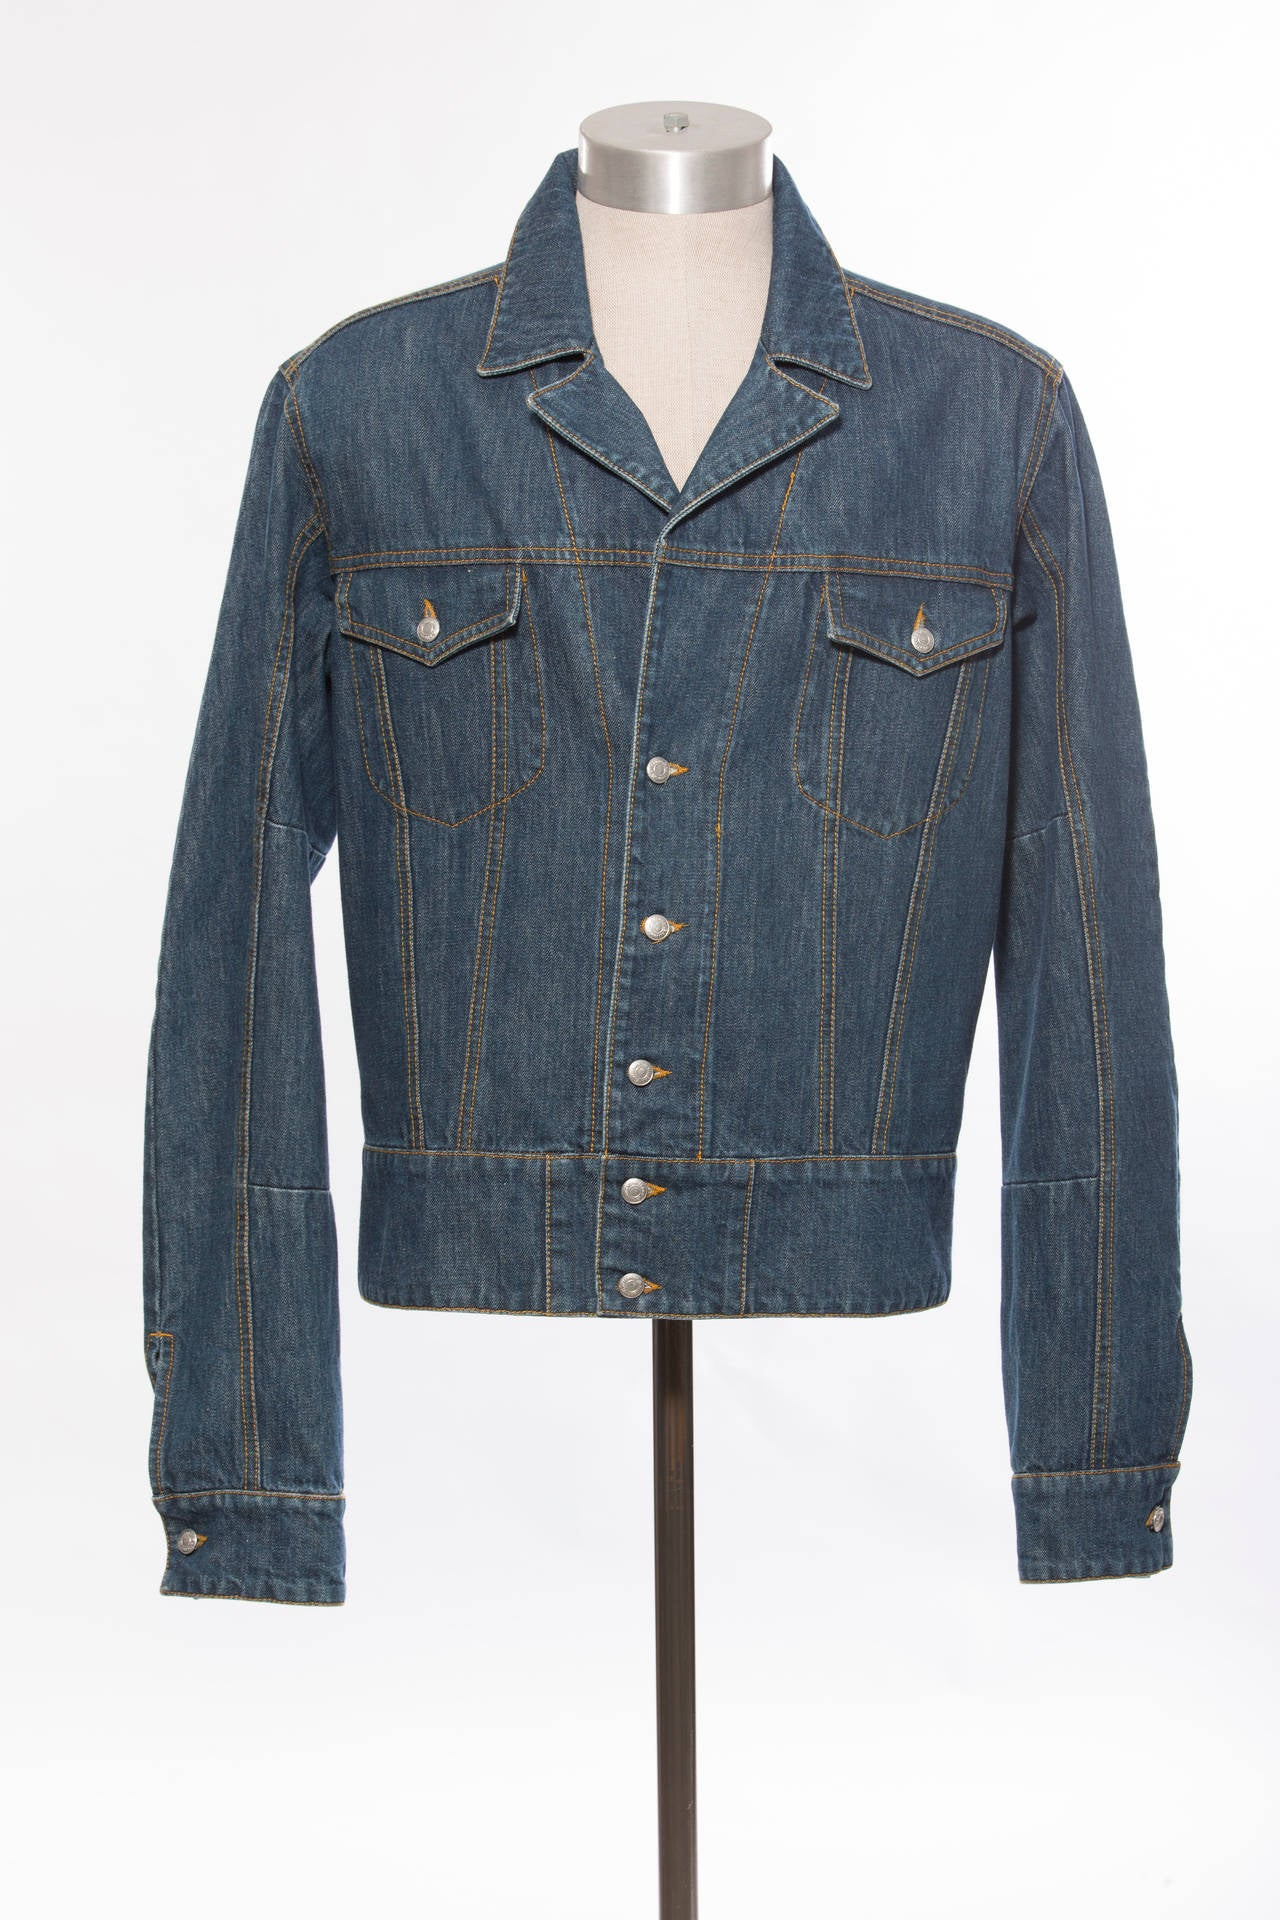 John Galliano Men39s Denim Jacket With Embroidered Back For